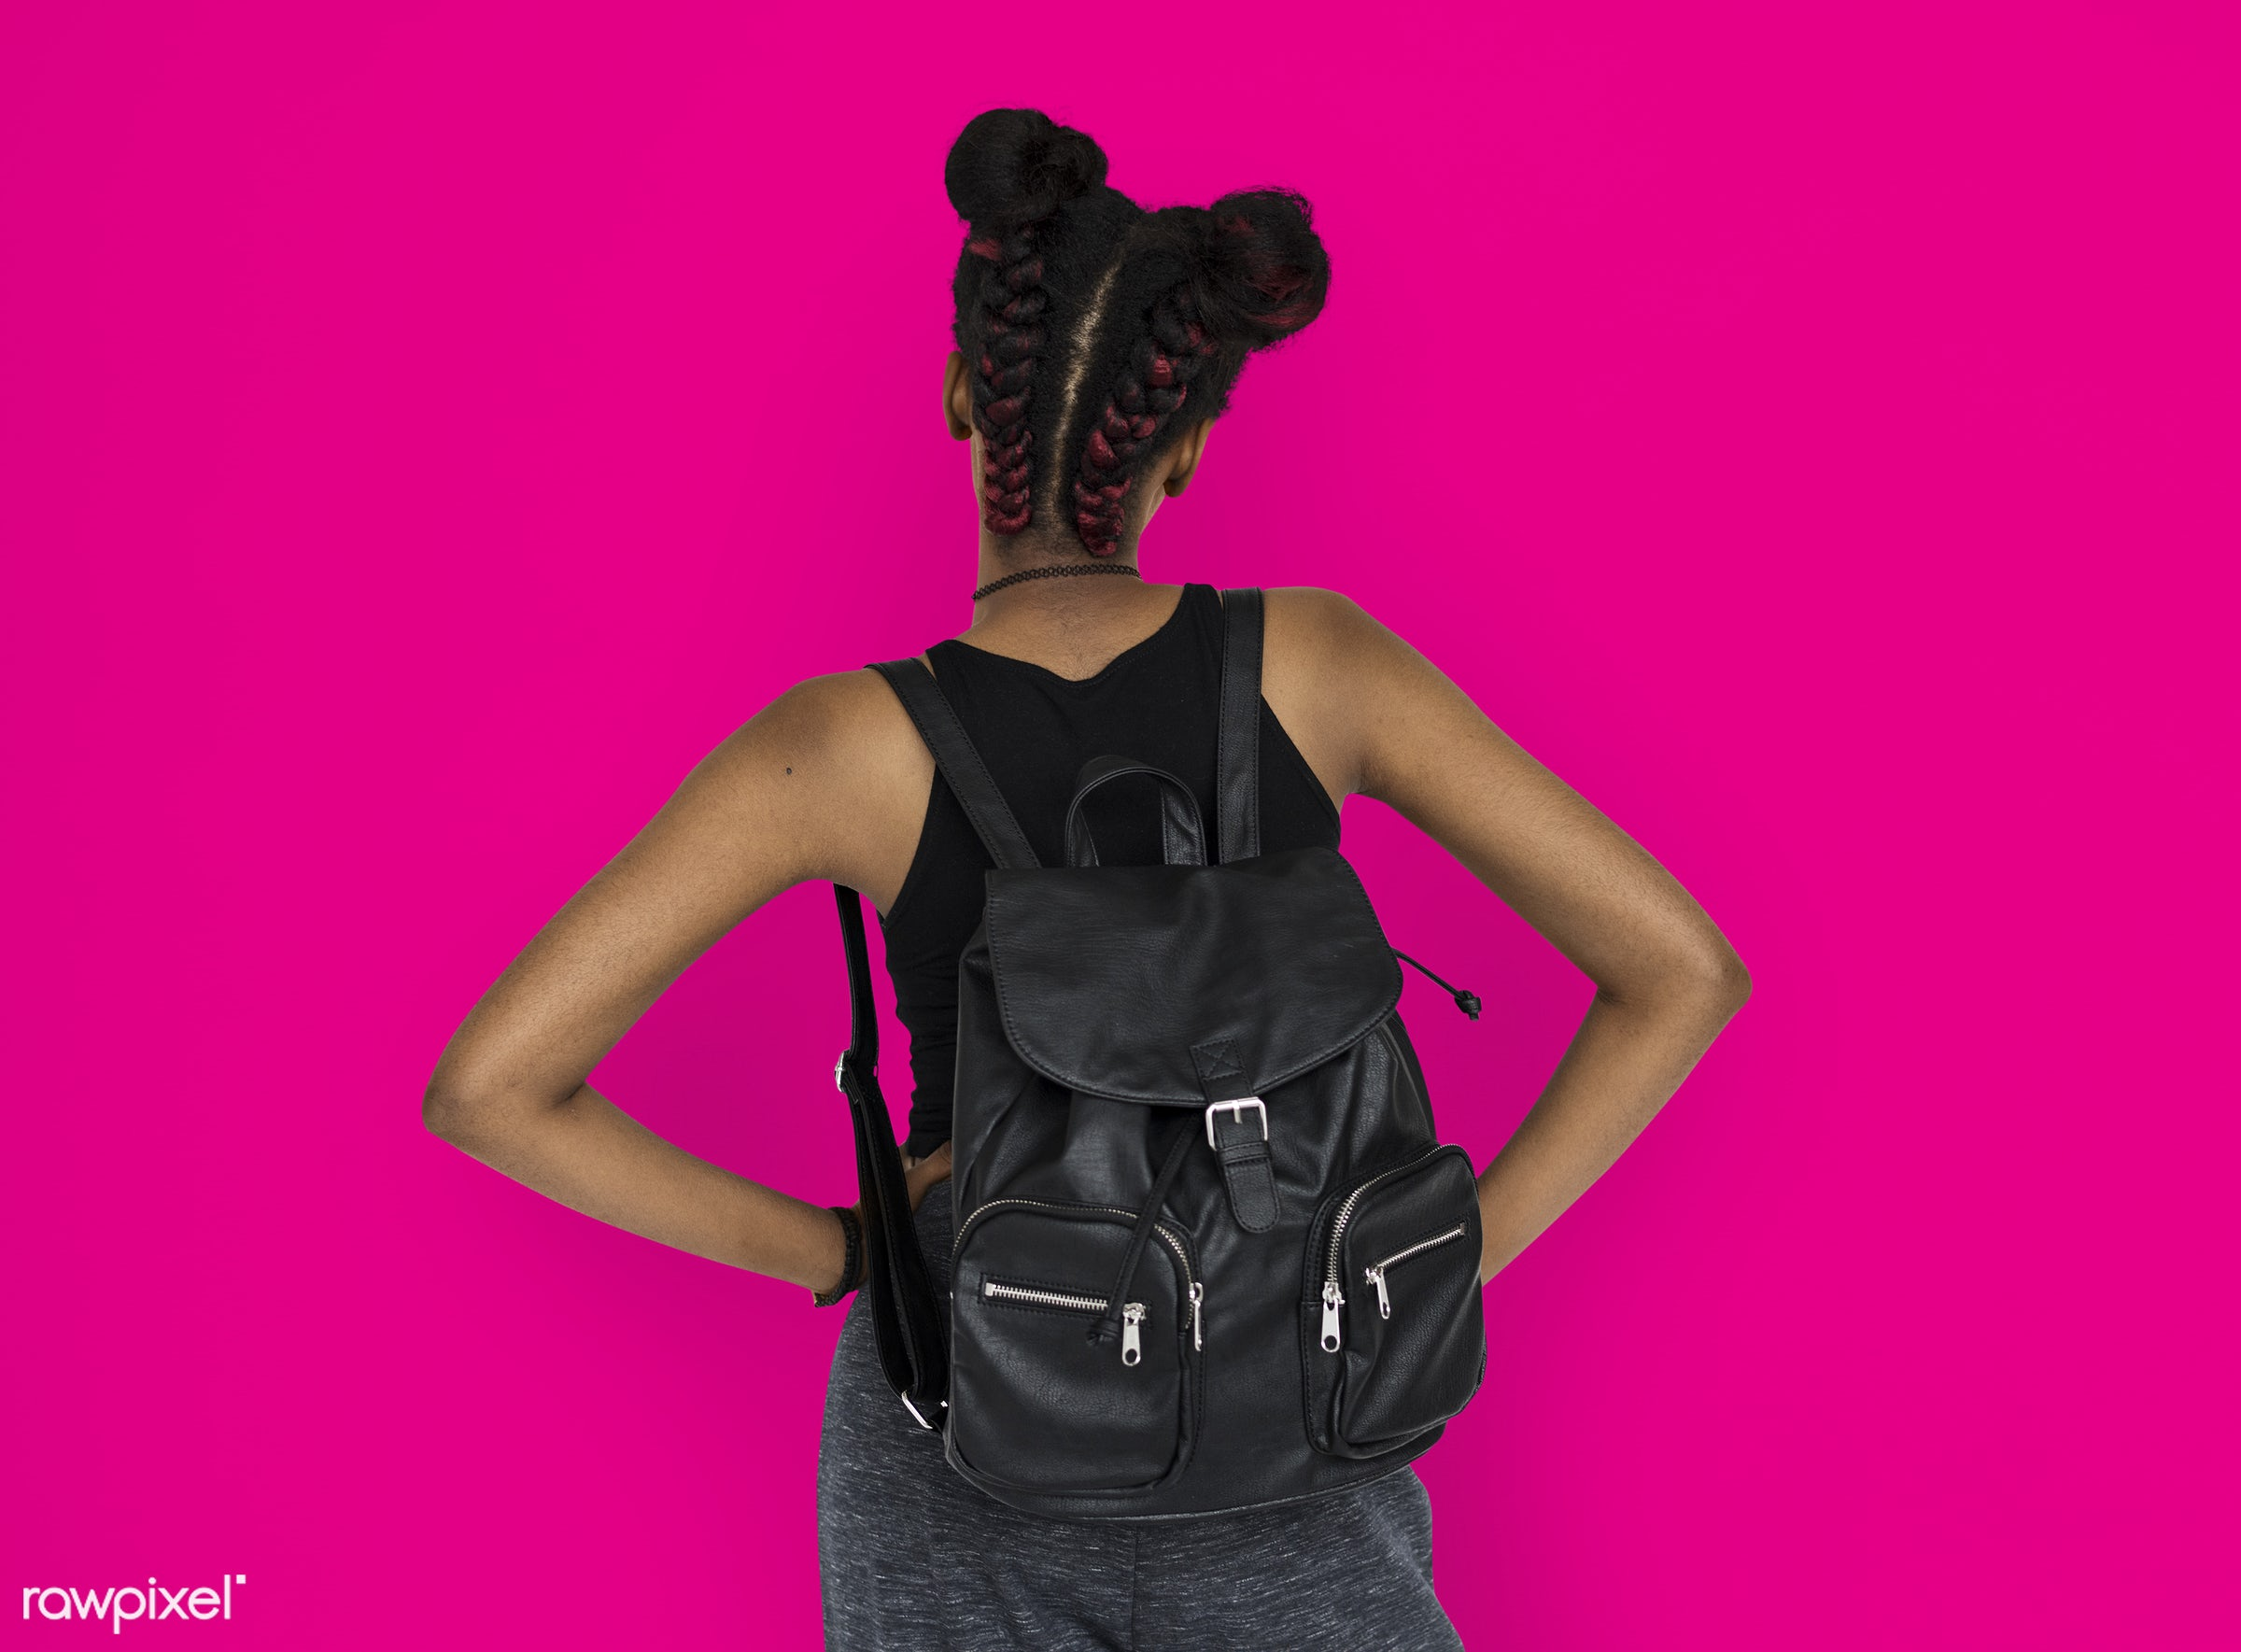 studio, person, african, people, girl, style, woman, lifestyle, casual, backpack, pink, abstract, isolated, rear view, buns...